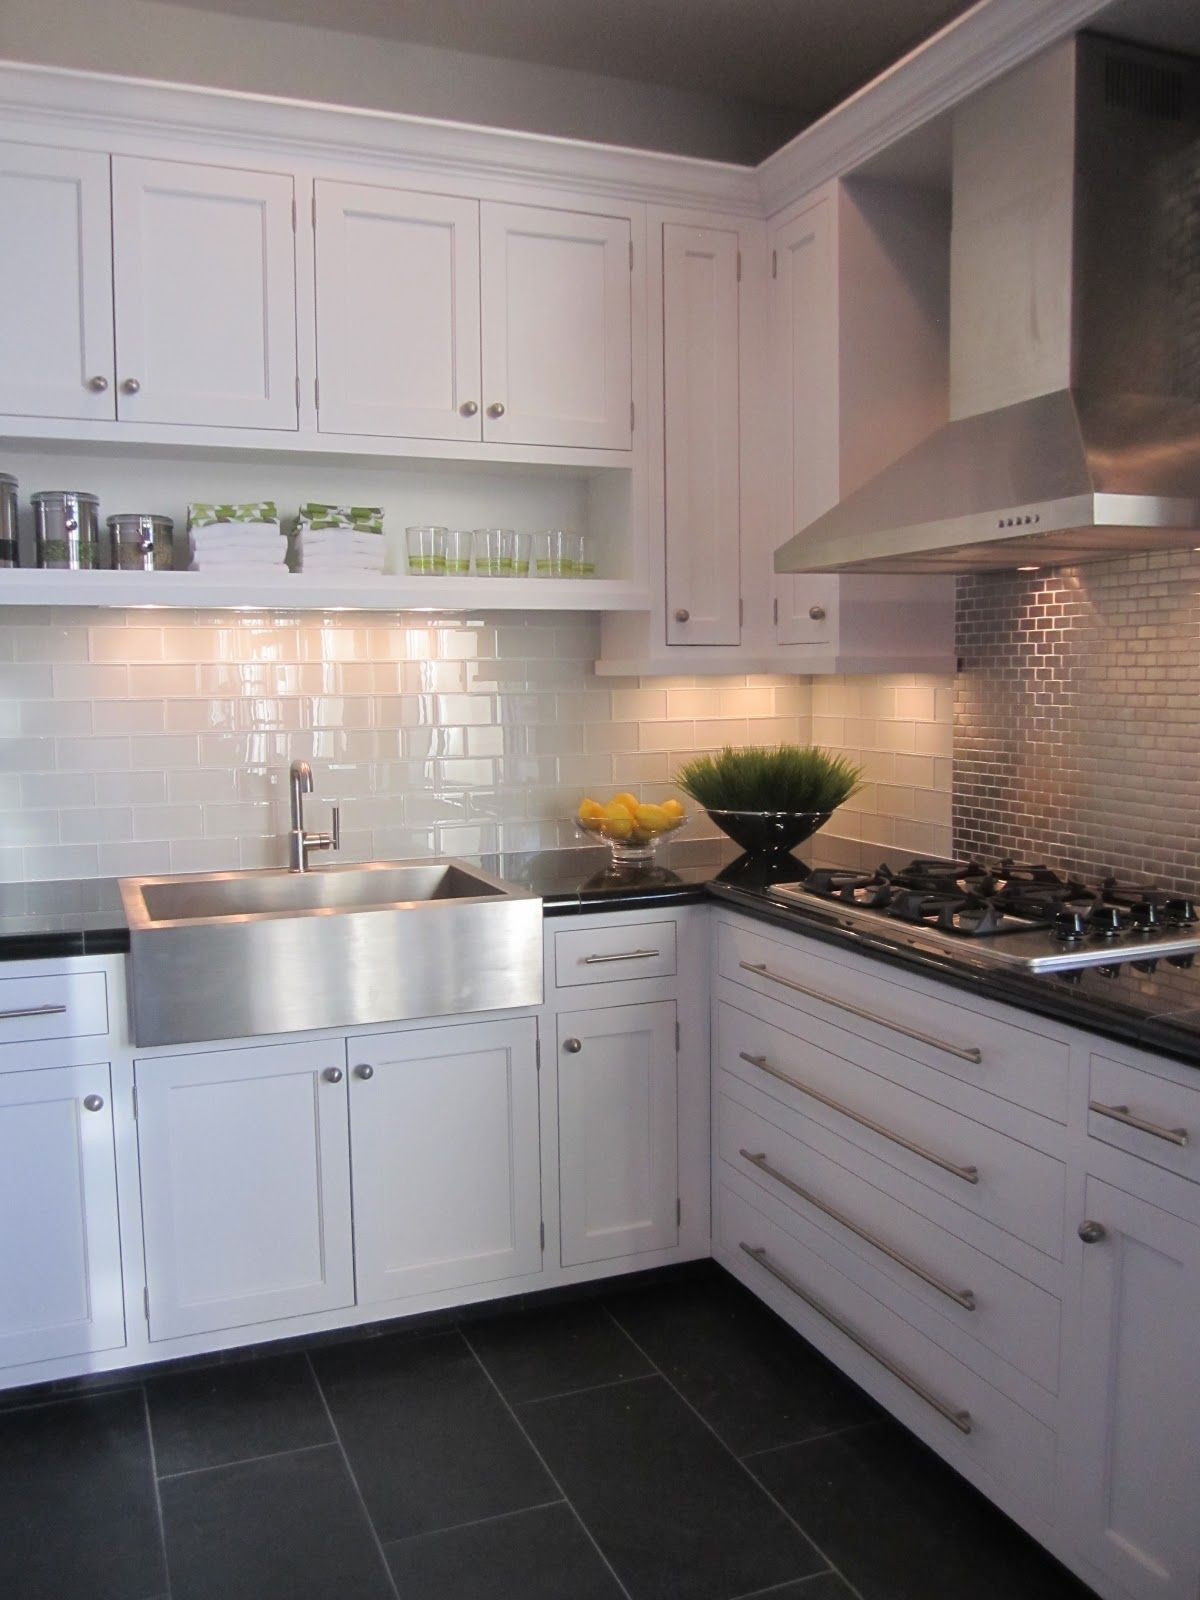 15 Fantastic Hardwood Floor Color with White Cabinets ...